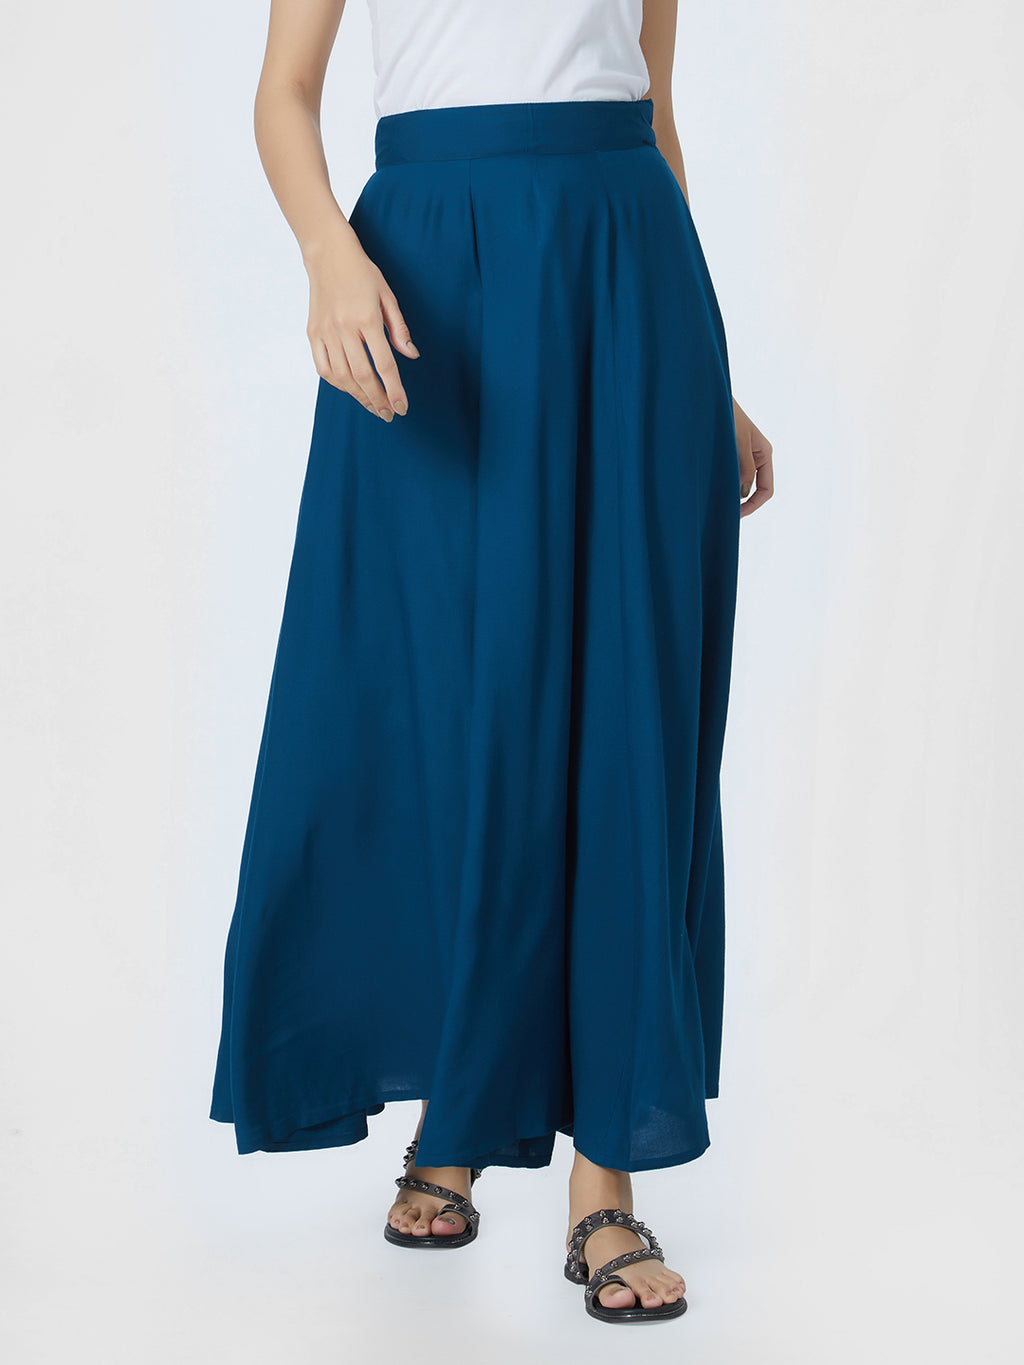 Breya Plain Blue Long Skirt